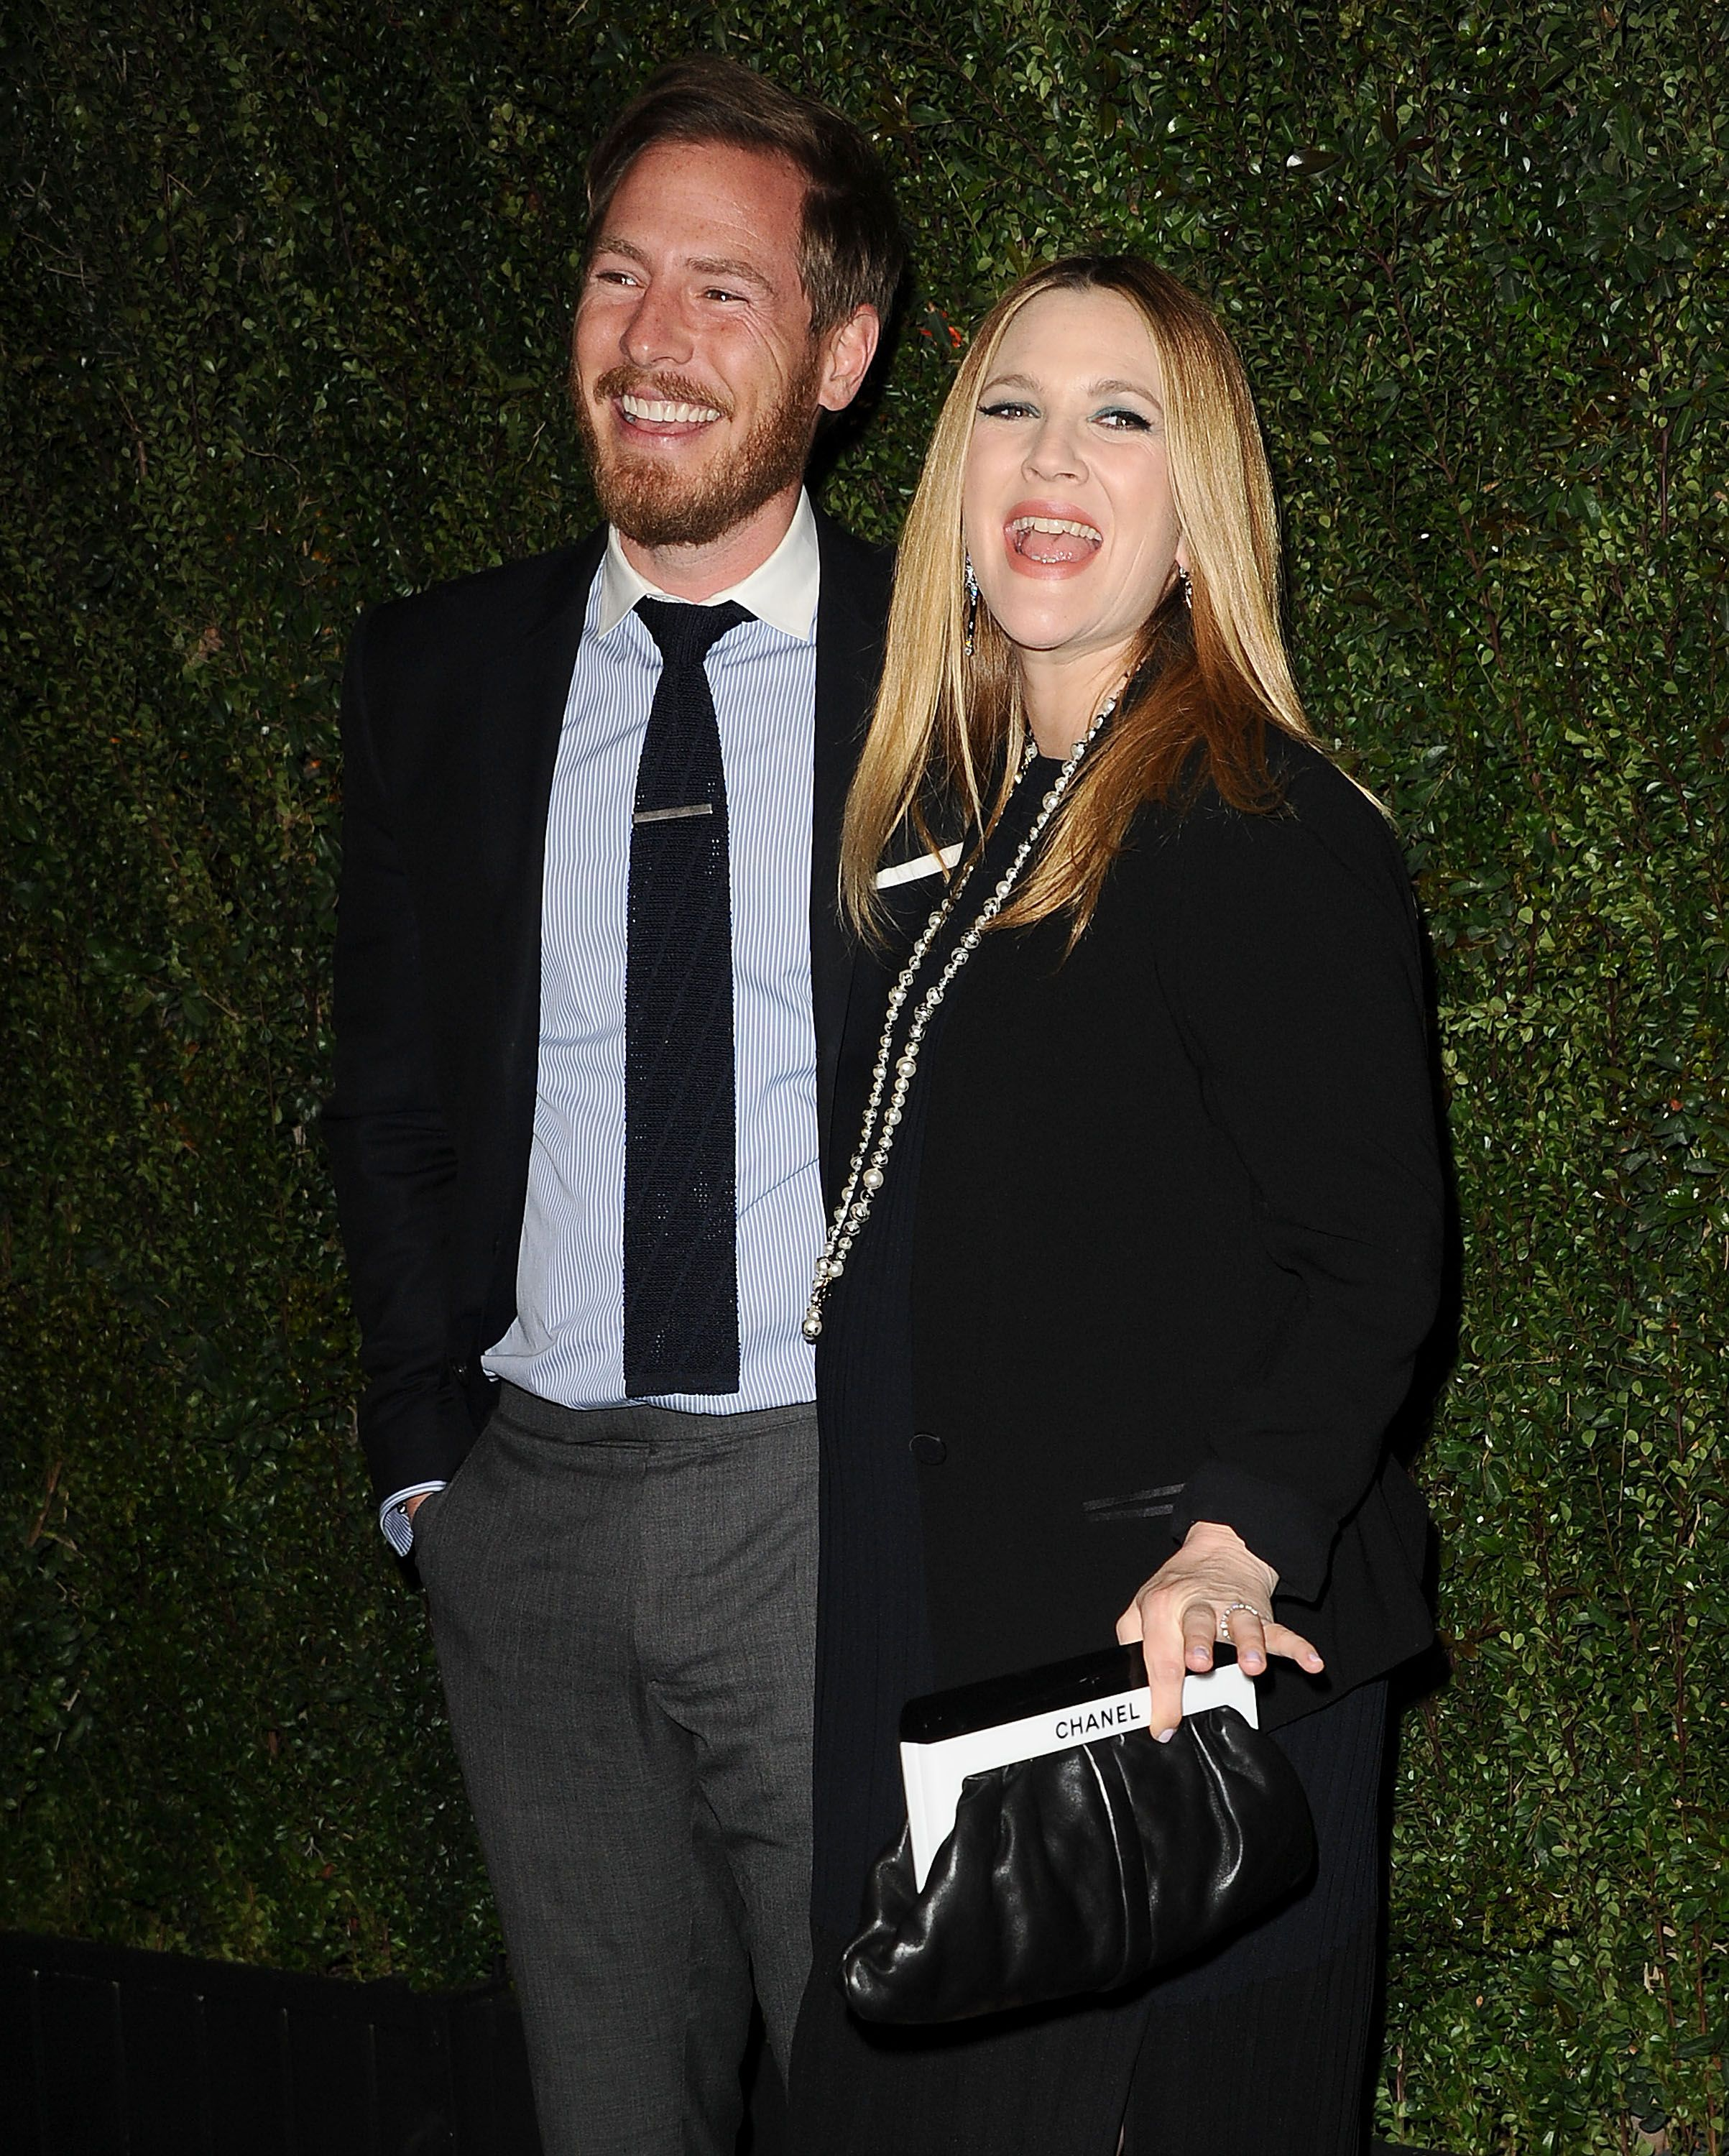 """Drew Barrymore and Will Kopelman at the release of """"Find It in Anything"""" in Beverly Hills on January 14, 2014 